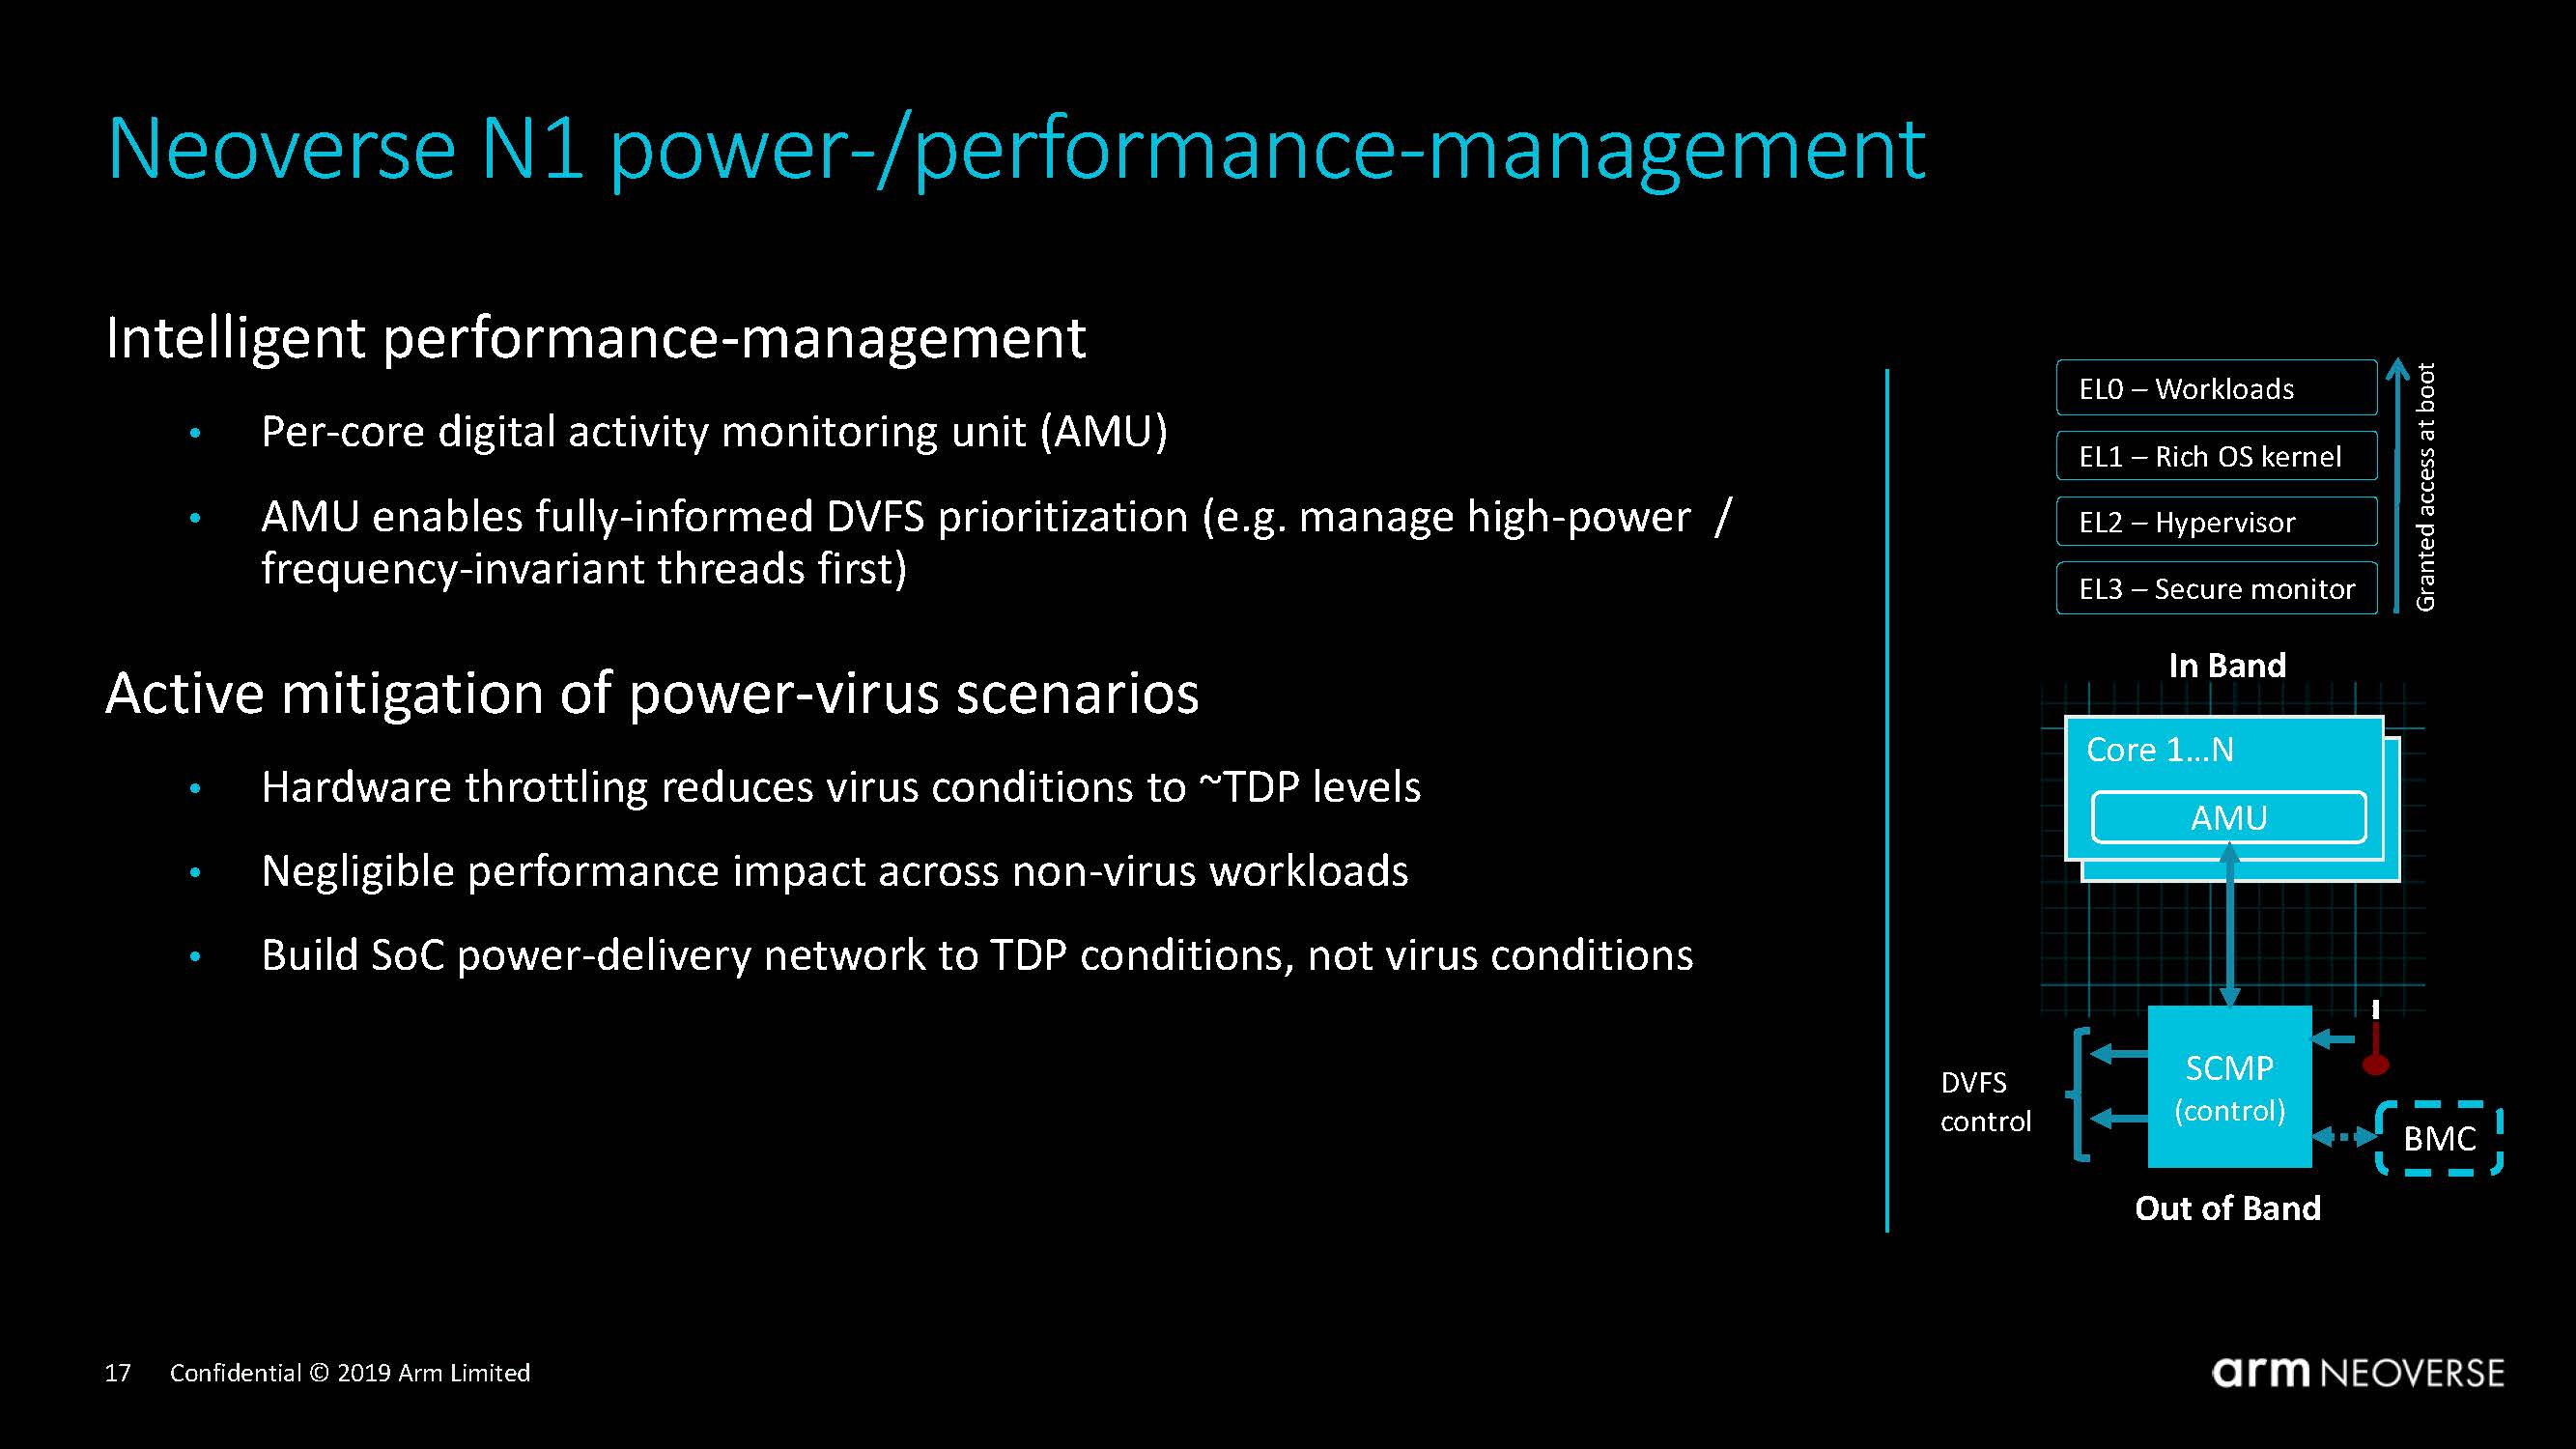 Arm Neoverse N1 Tech Day Power Performance Management